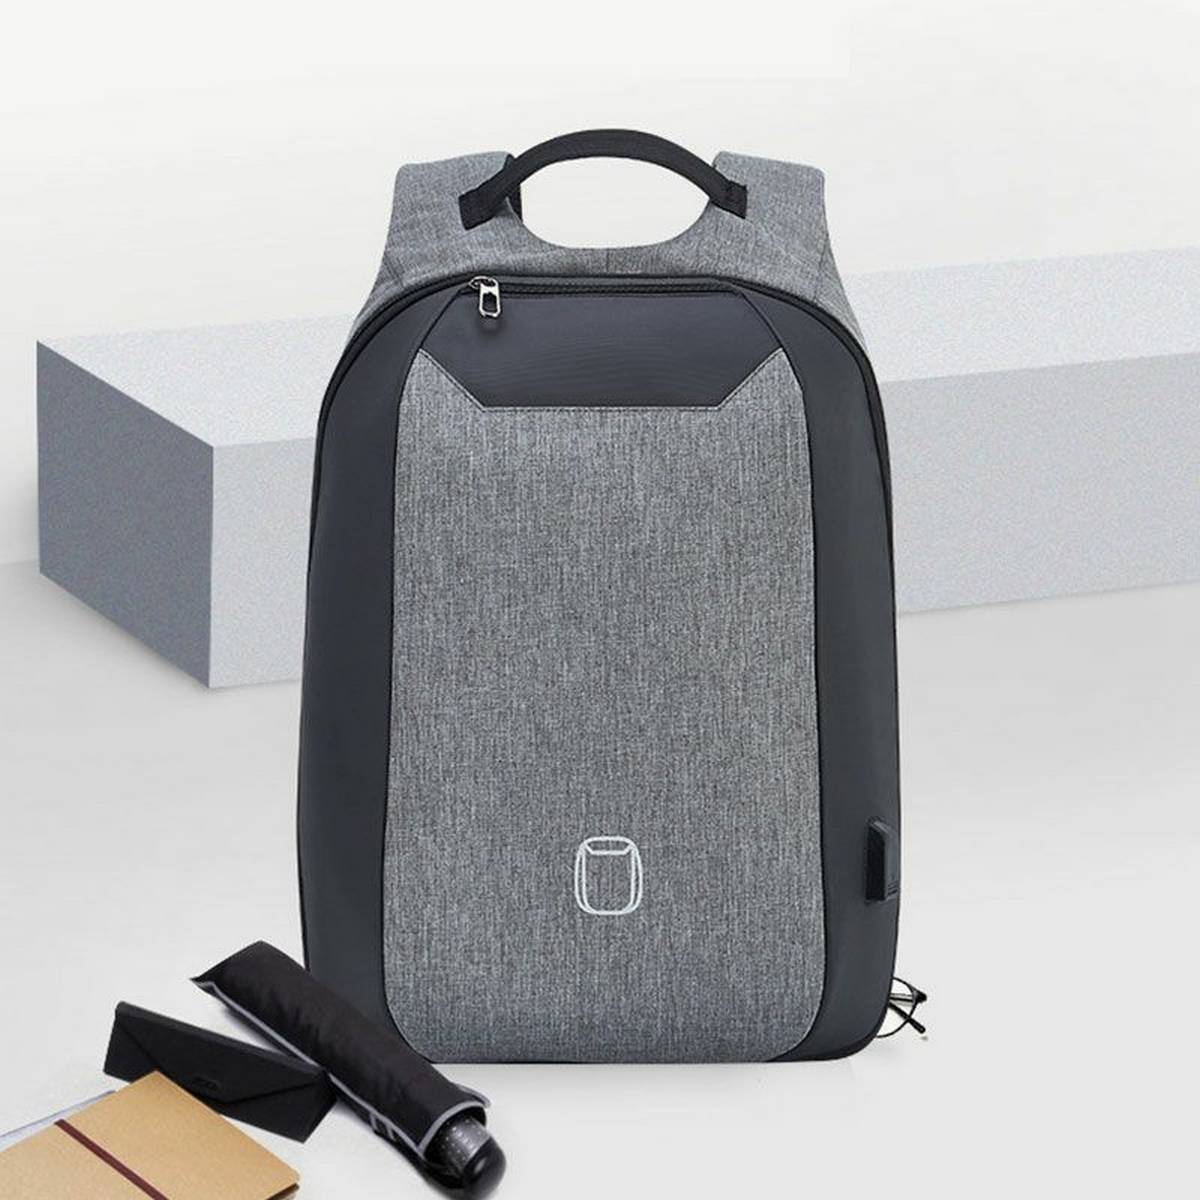 Office Laptop Backpack with USB charging port - Grey